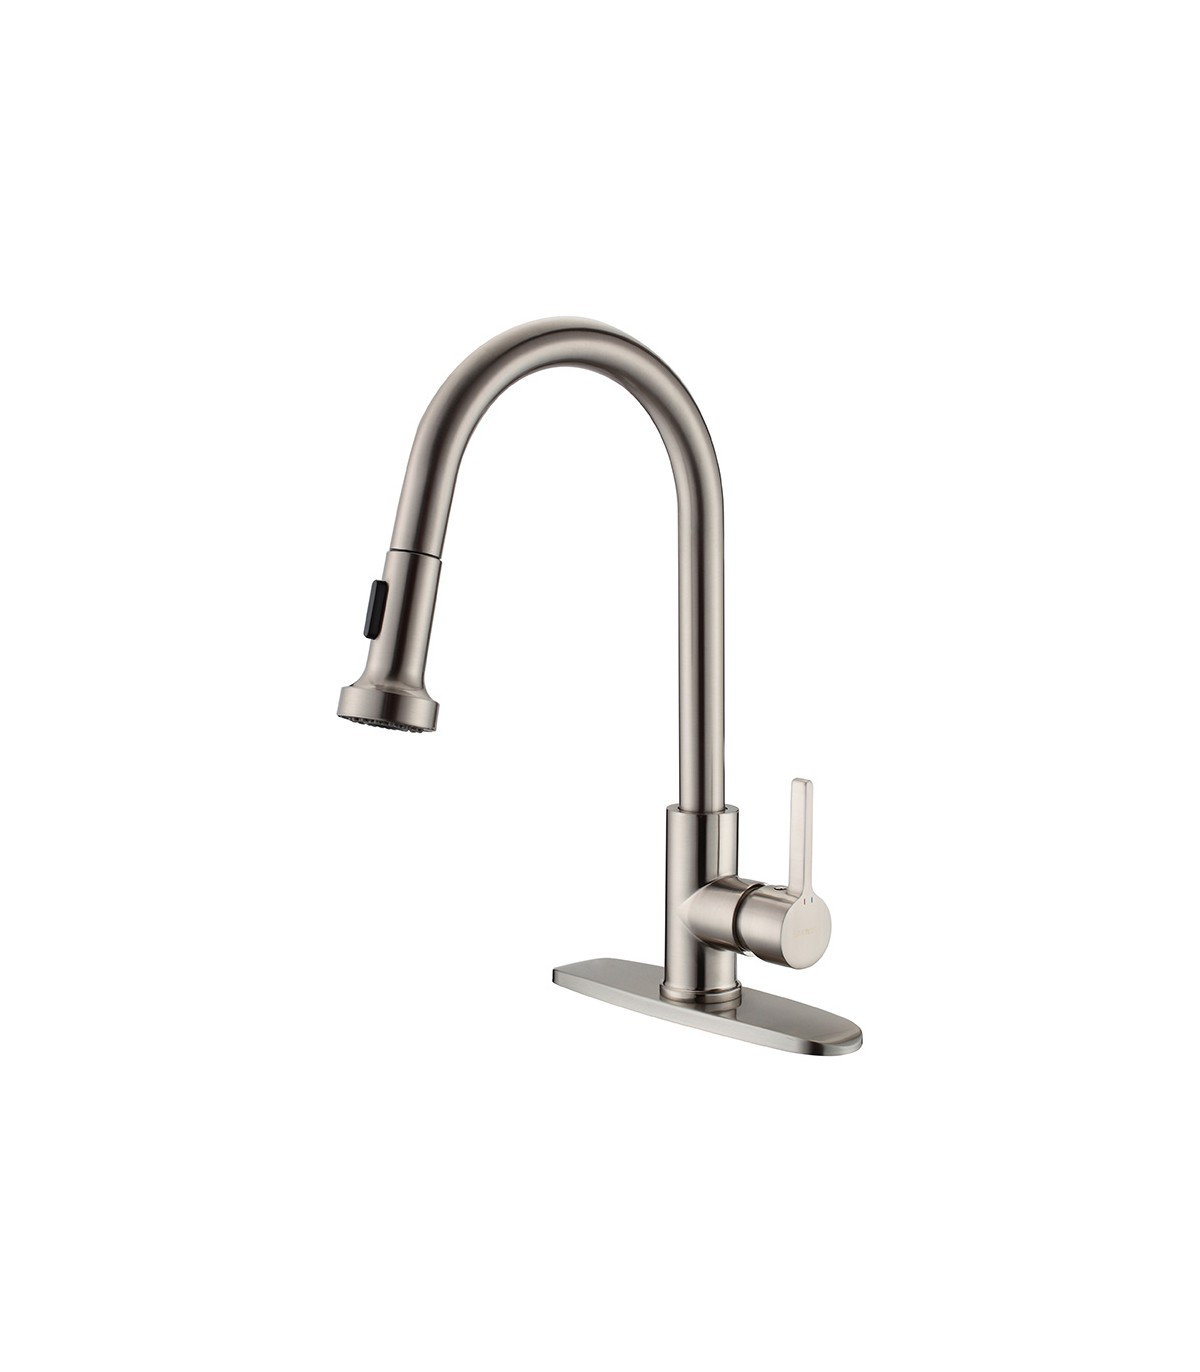 Ls 422002 Pull Down Kitchen Faucet In Brushed Nickel